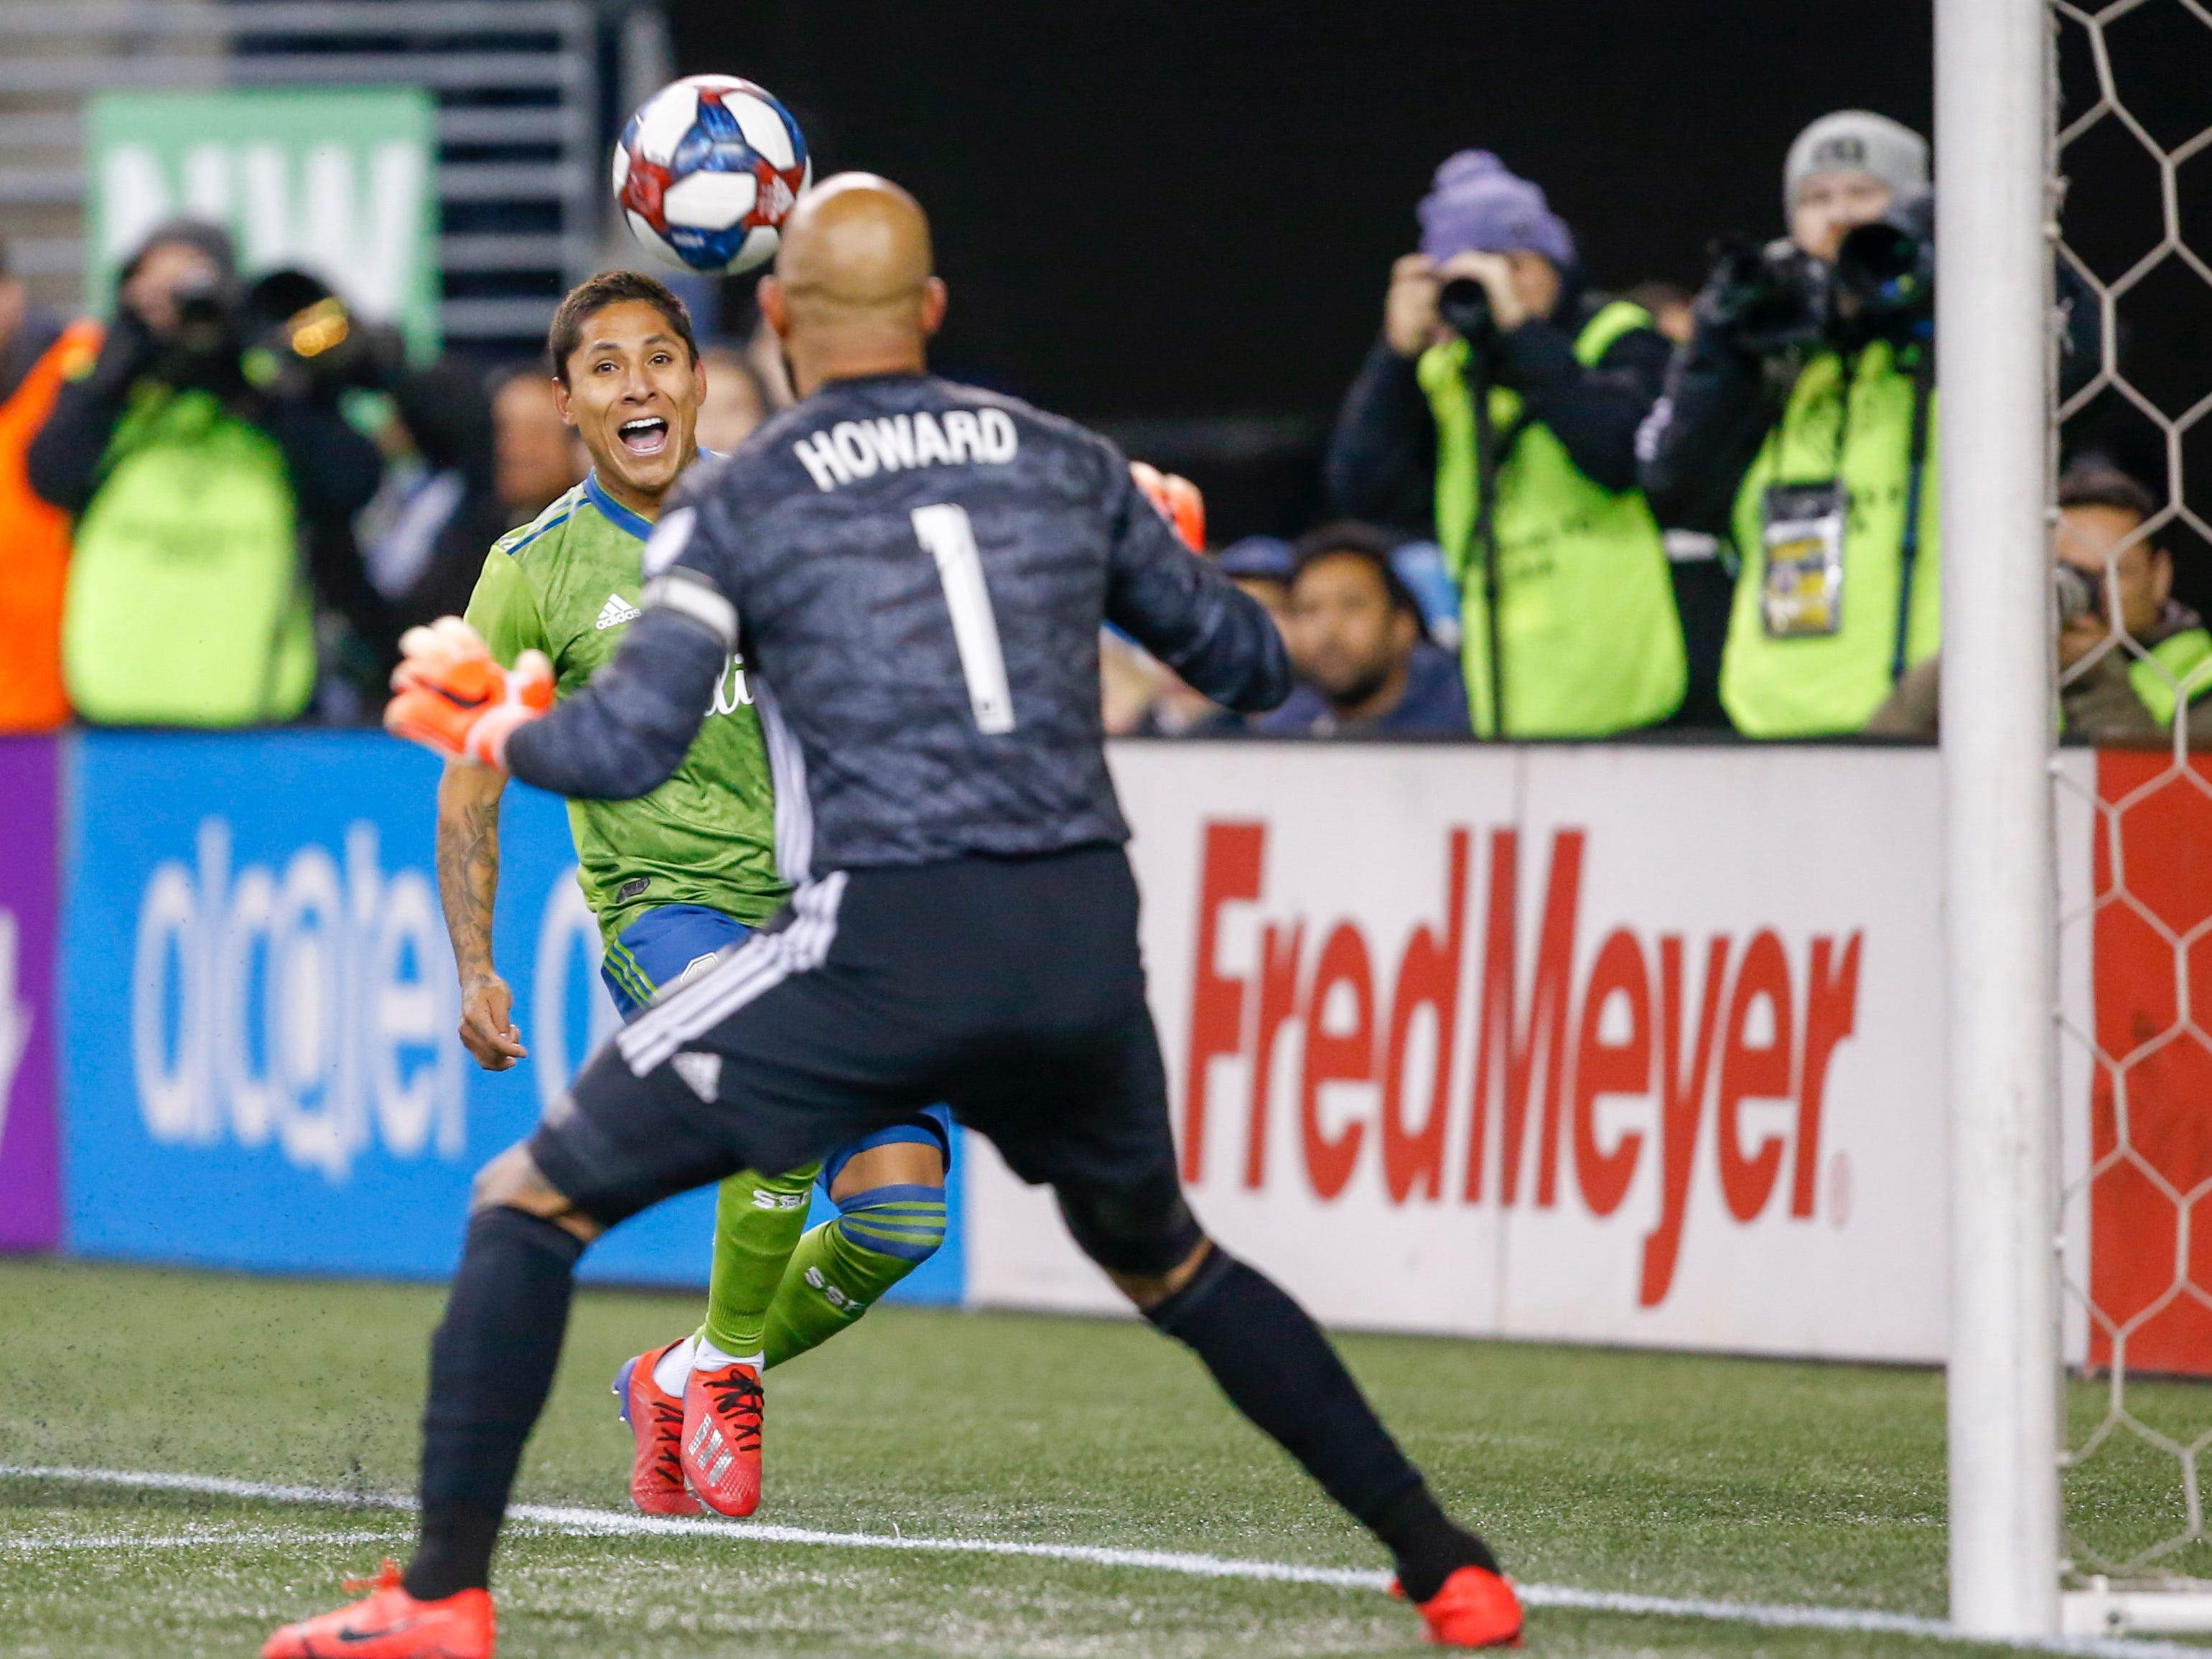 March 9: Seattle Sounders FC forward Raul Ruidiaz passes in side the end line against Colorado Rapids goalkeeper Tim Howard during the first half at CenturyLink Field. Seattle won the game, 2-0.